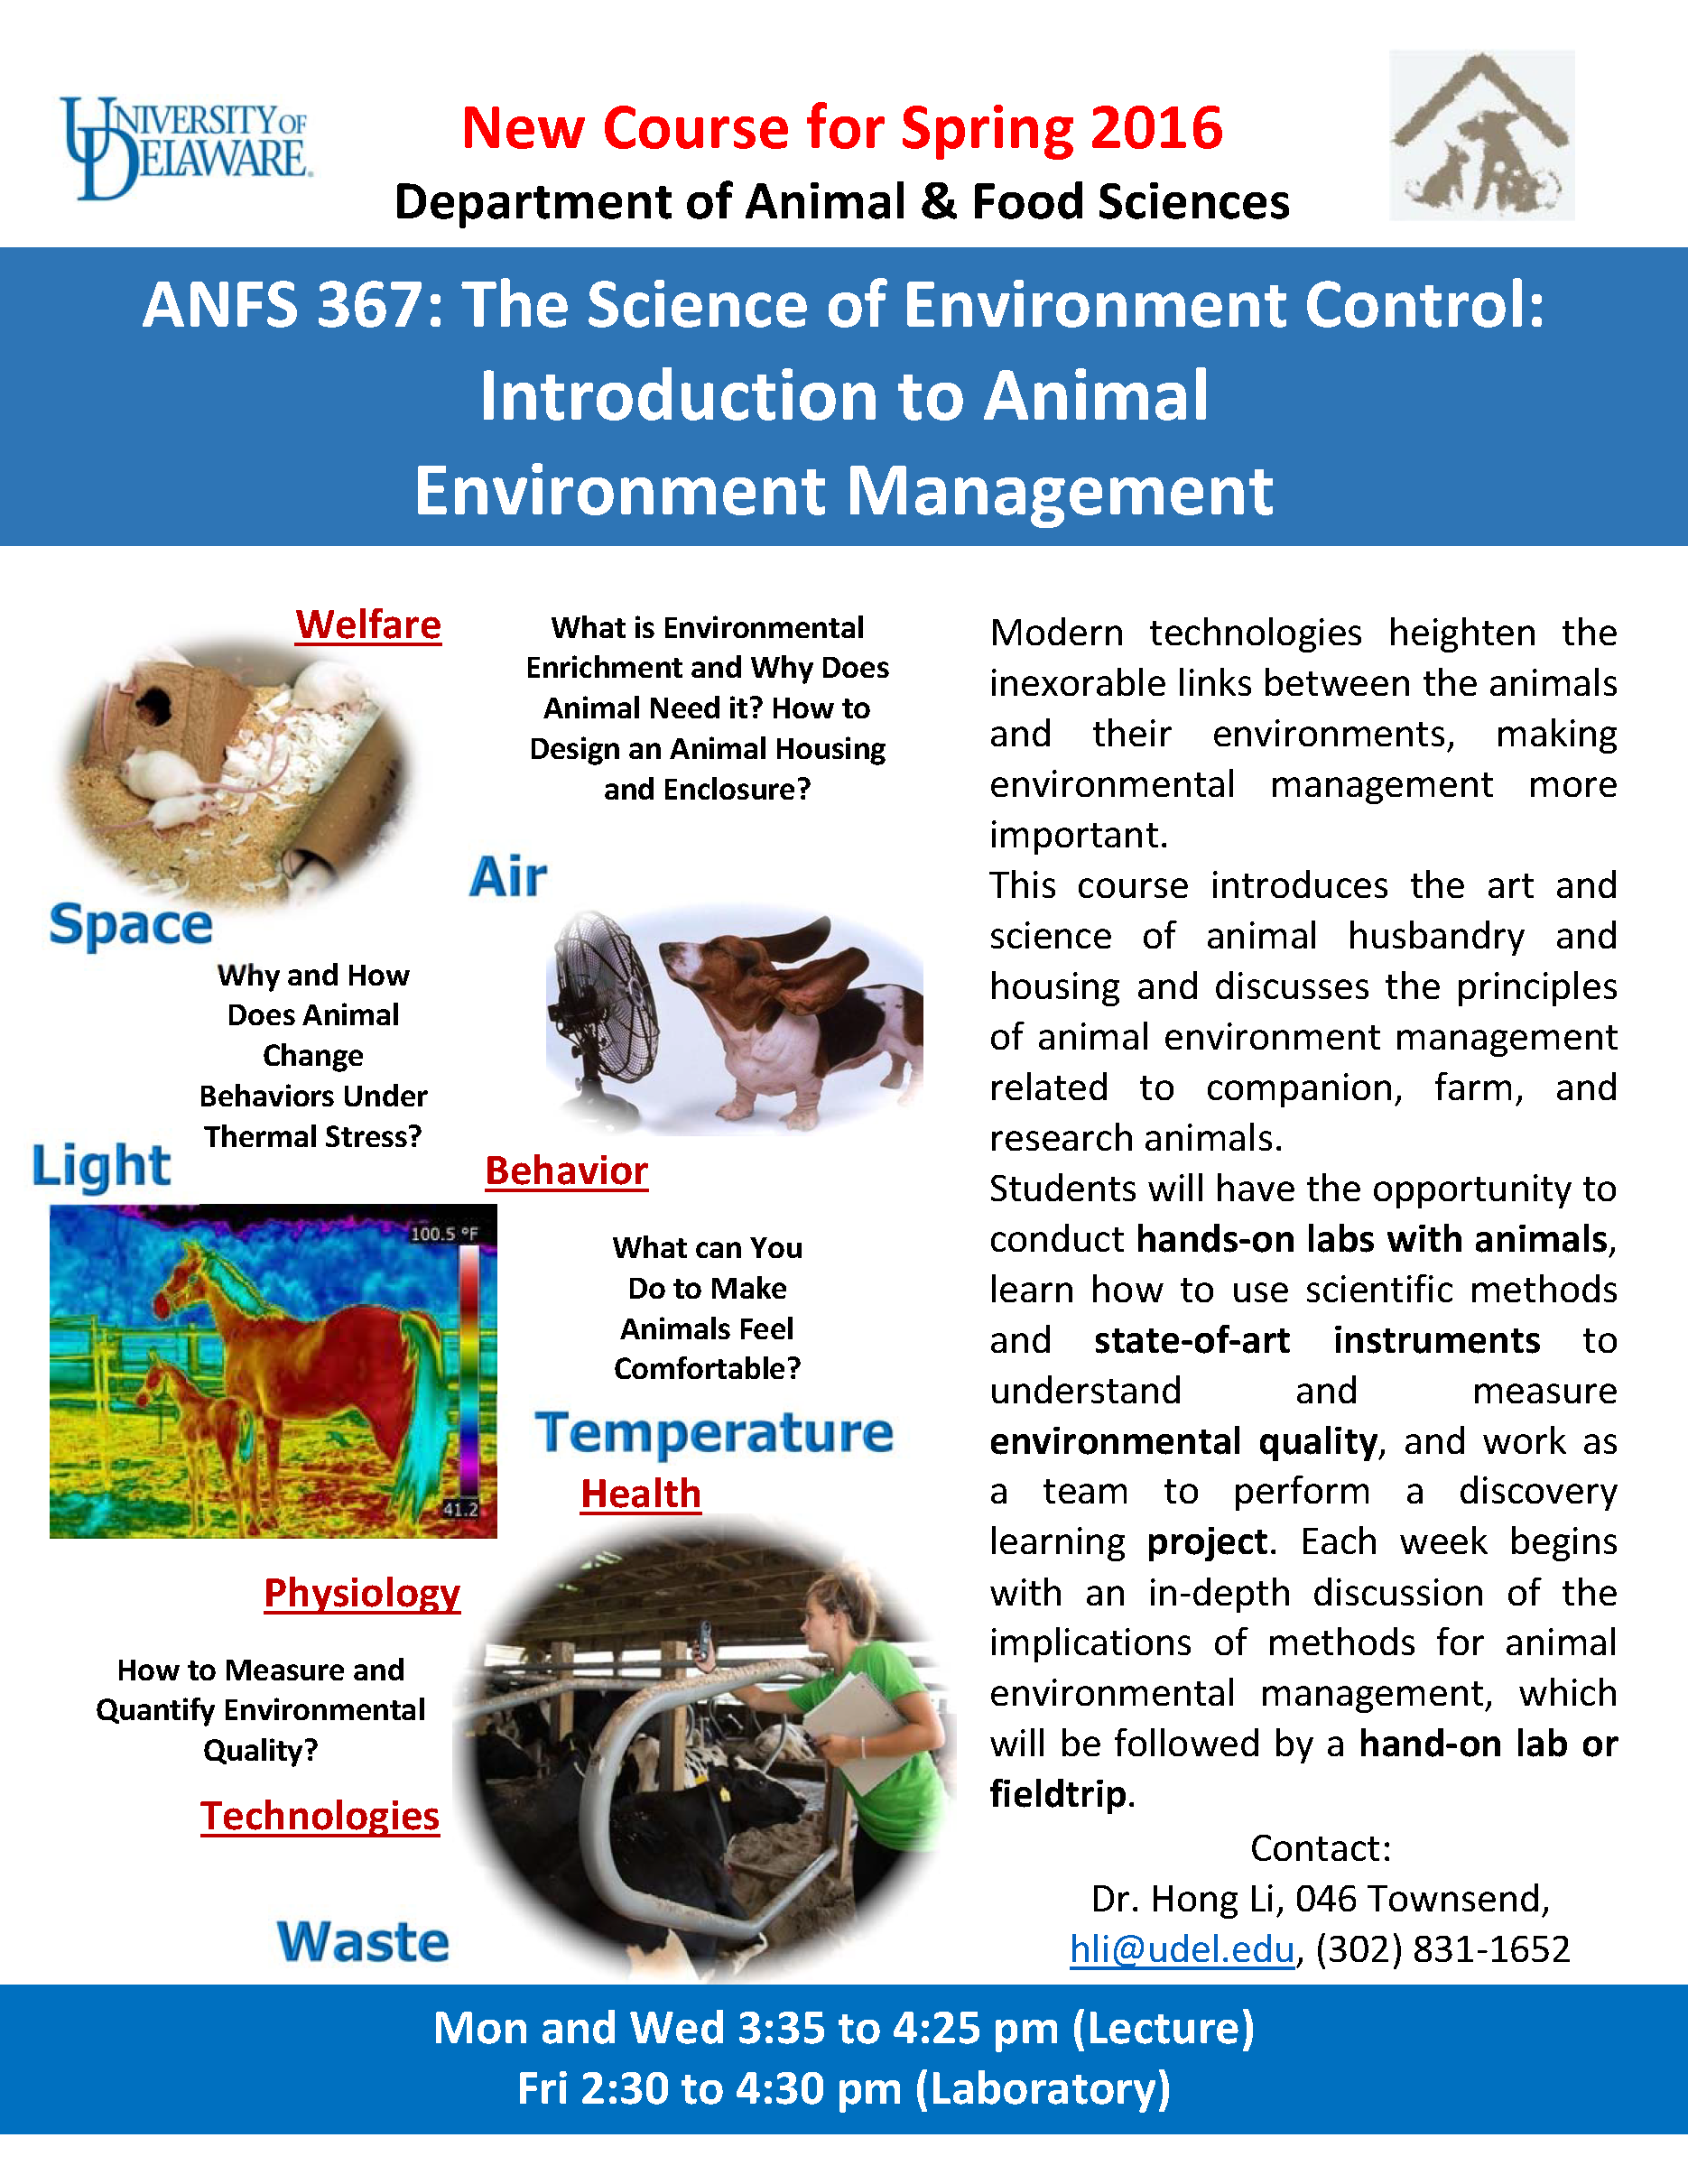 AnimalEnvironmentMangement_ANFS367_Flyer